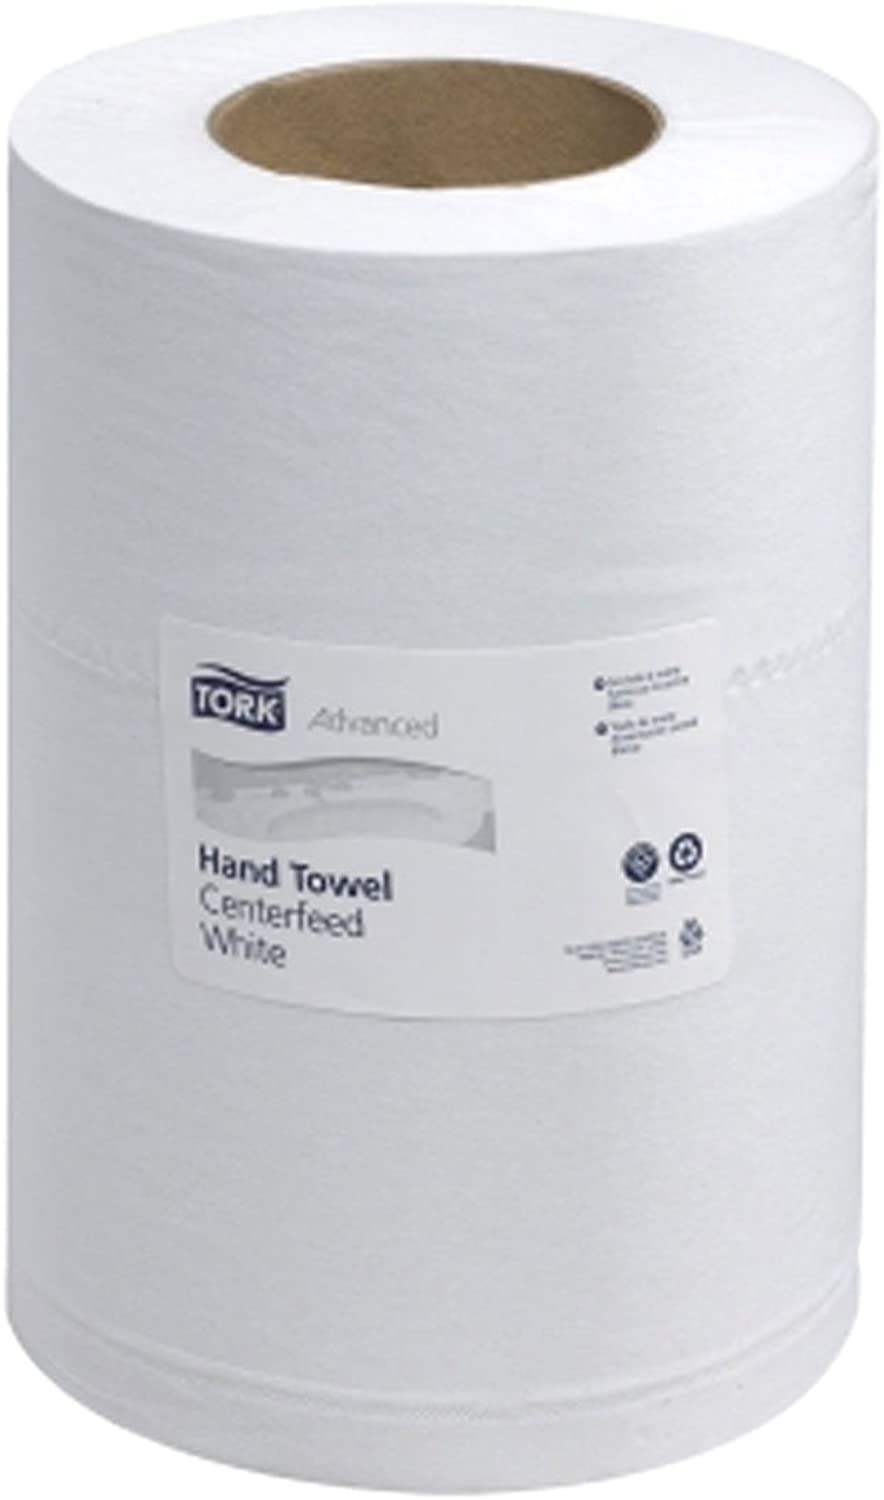 Tork 121225 Advanced 2-Ply Mini Centerfeed Wide Hand Towels, White - 12 Pack